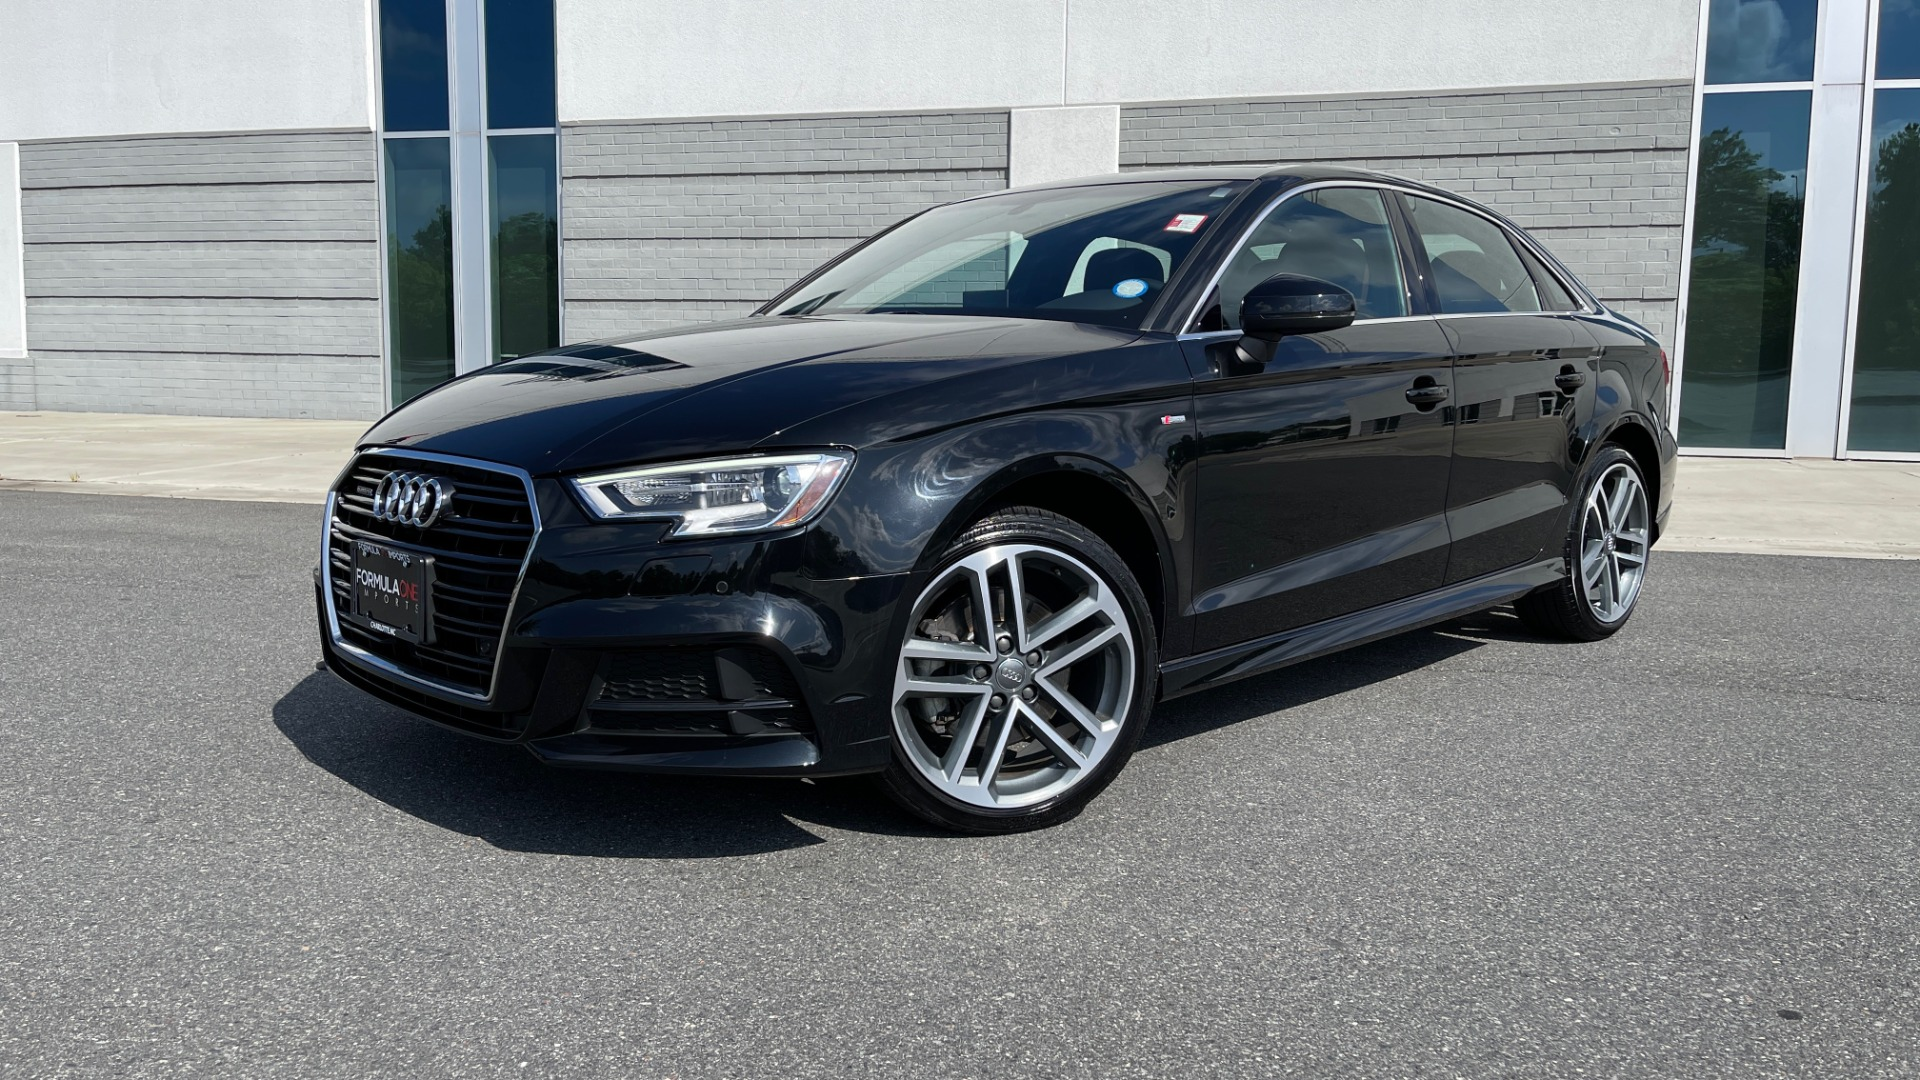 Used 2018 Audi A3 SEDAN PREMIUM PLUS / S-LINE / PANO-ROOF / PARK SYS / REARVIEW for sale $31,795 at Formula Imports in Charlotte NC 28227 1